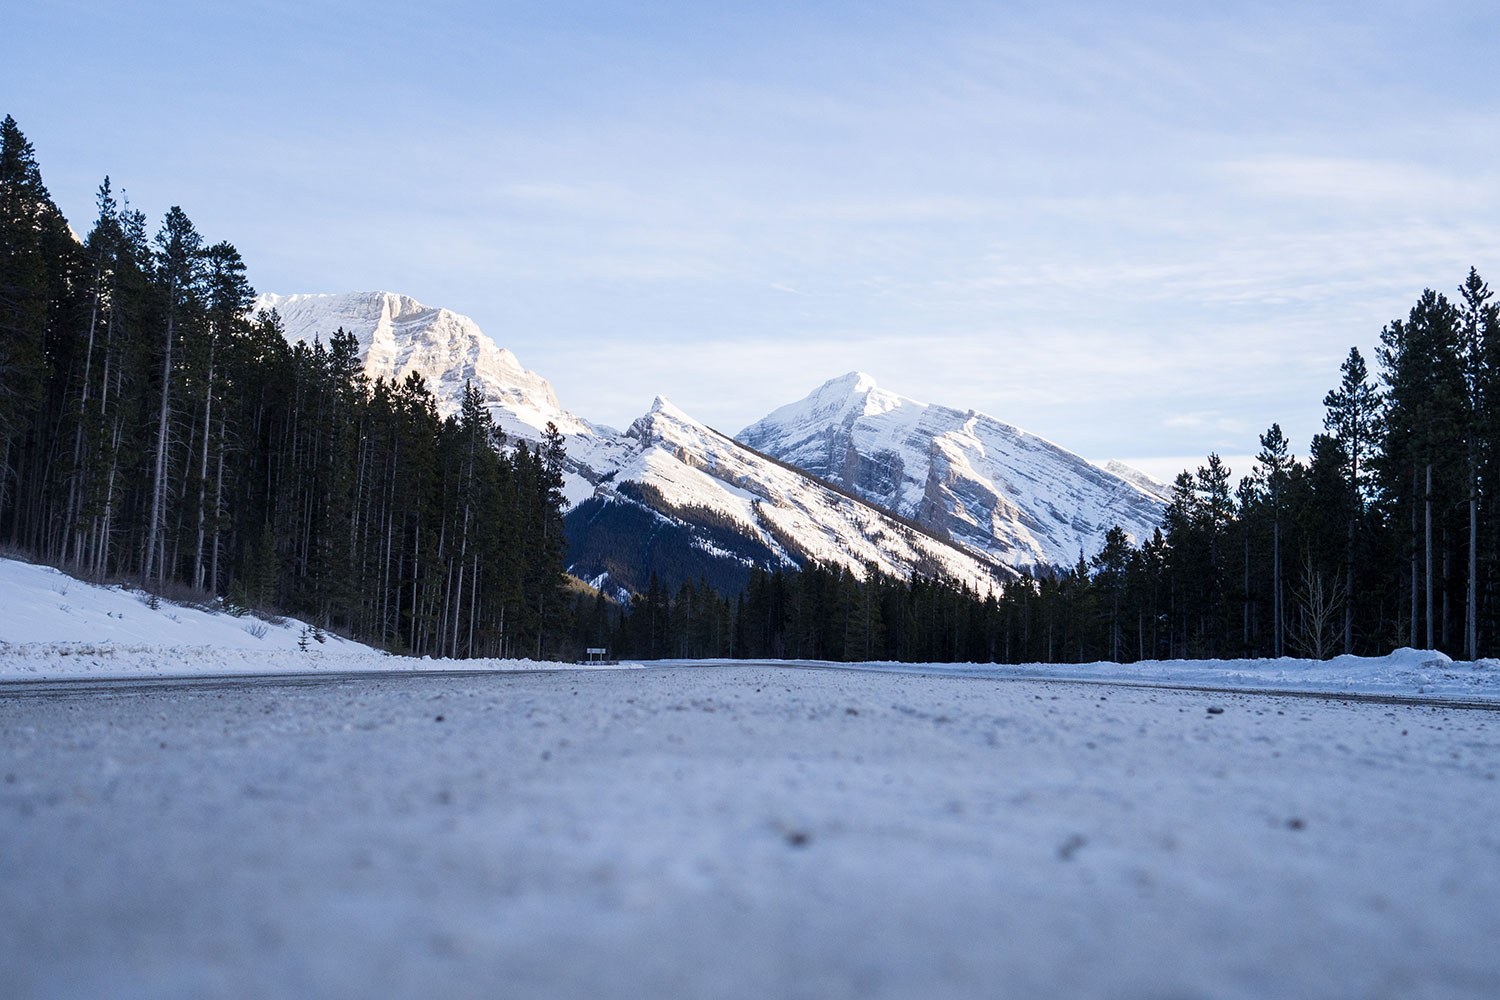 canmore-mountains-icefields-parkway-kanada-alberta-www-oooyeah-de